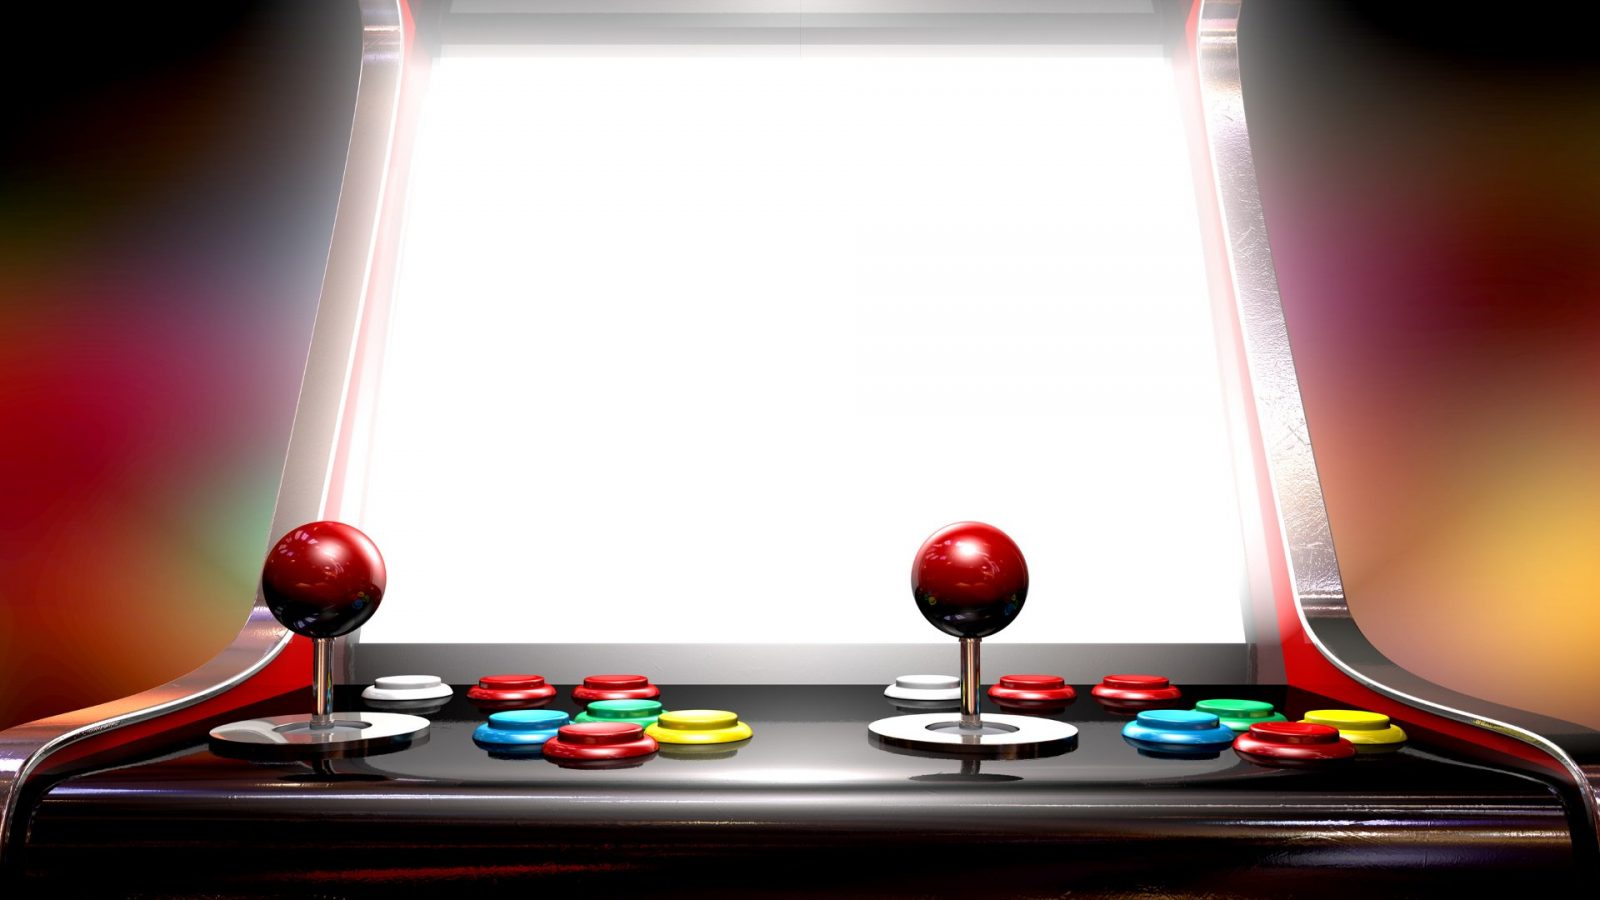 ISFE Writes French Ruling on Video Games Violates EU Law